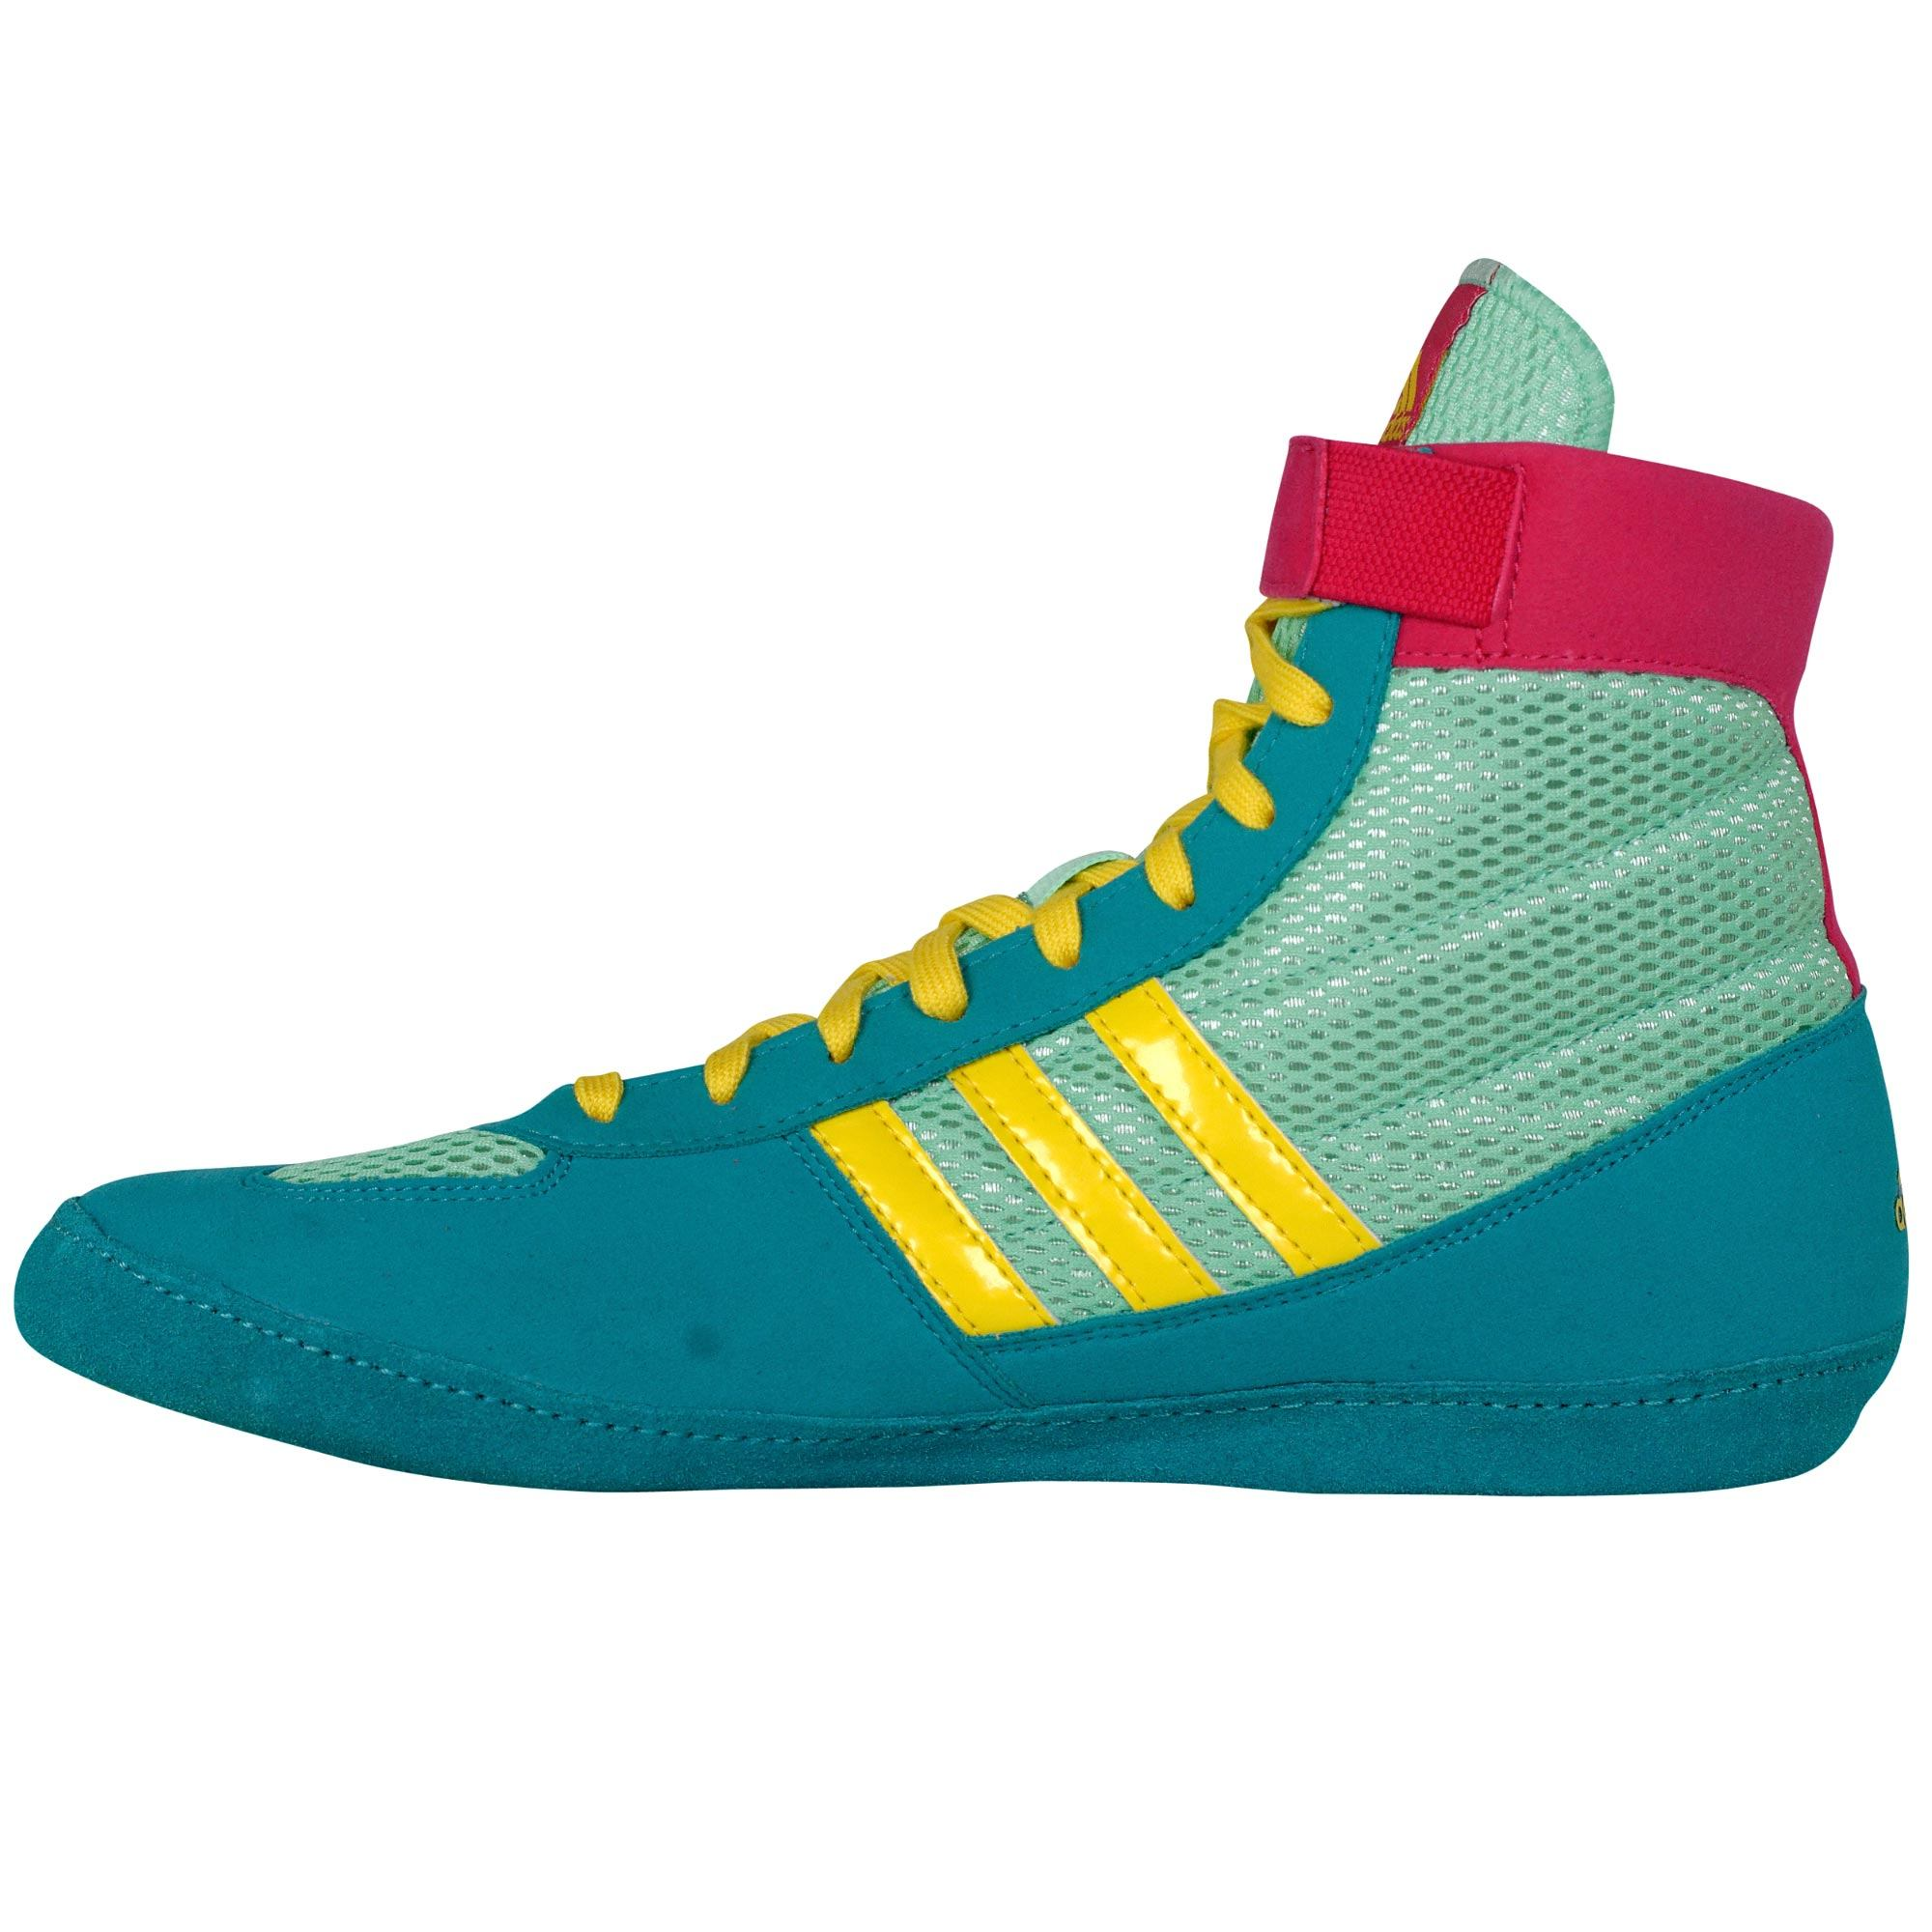 ... outsideAdidas Combat Speed 4 Lime Green Yellow Pink ... 29d65cb16